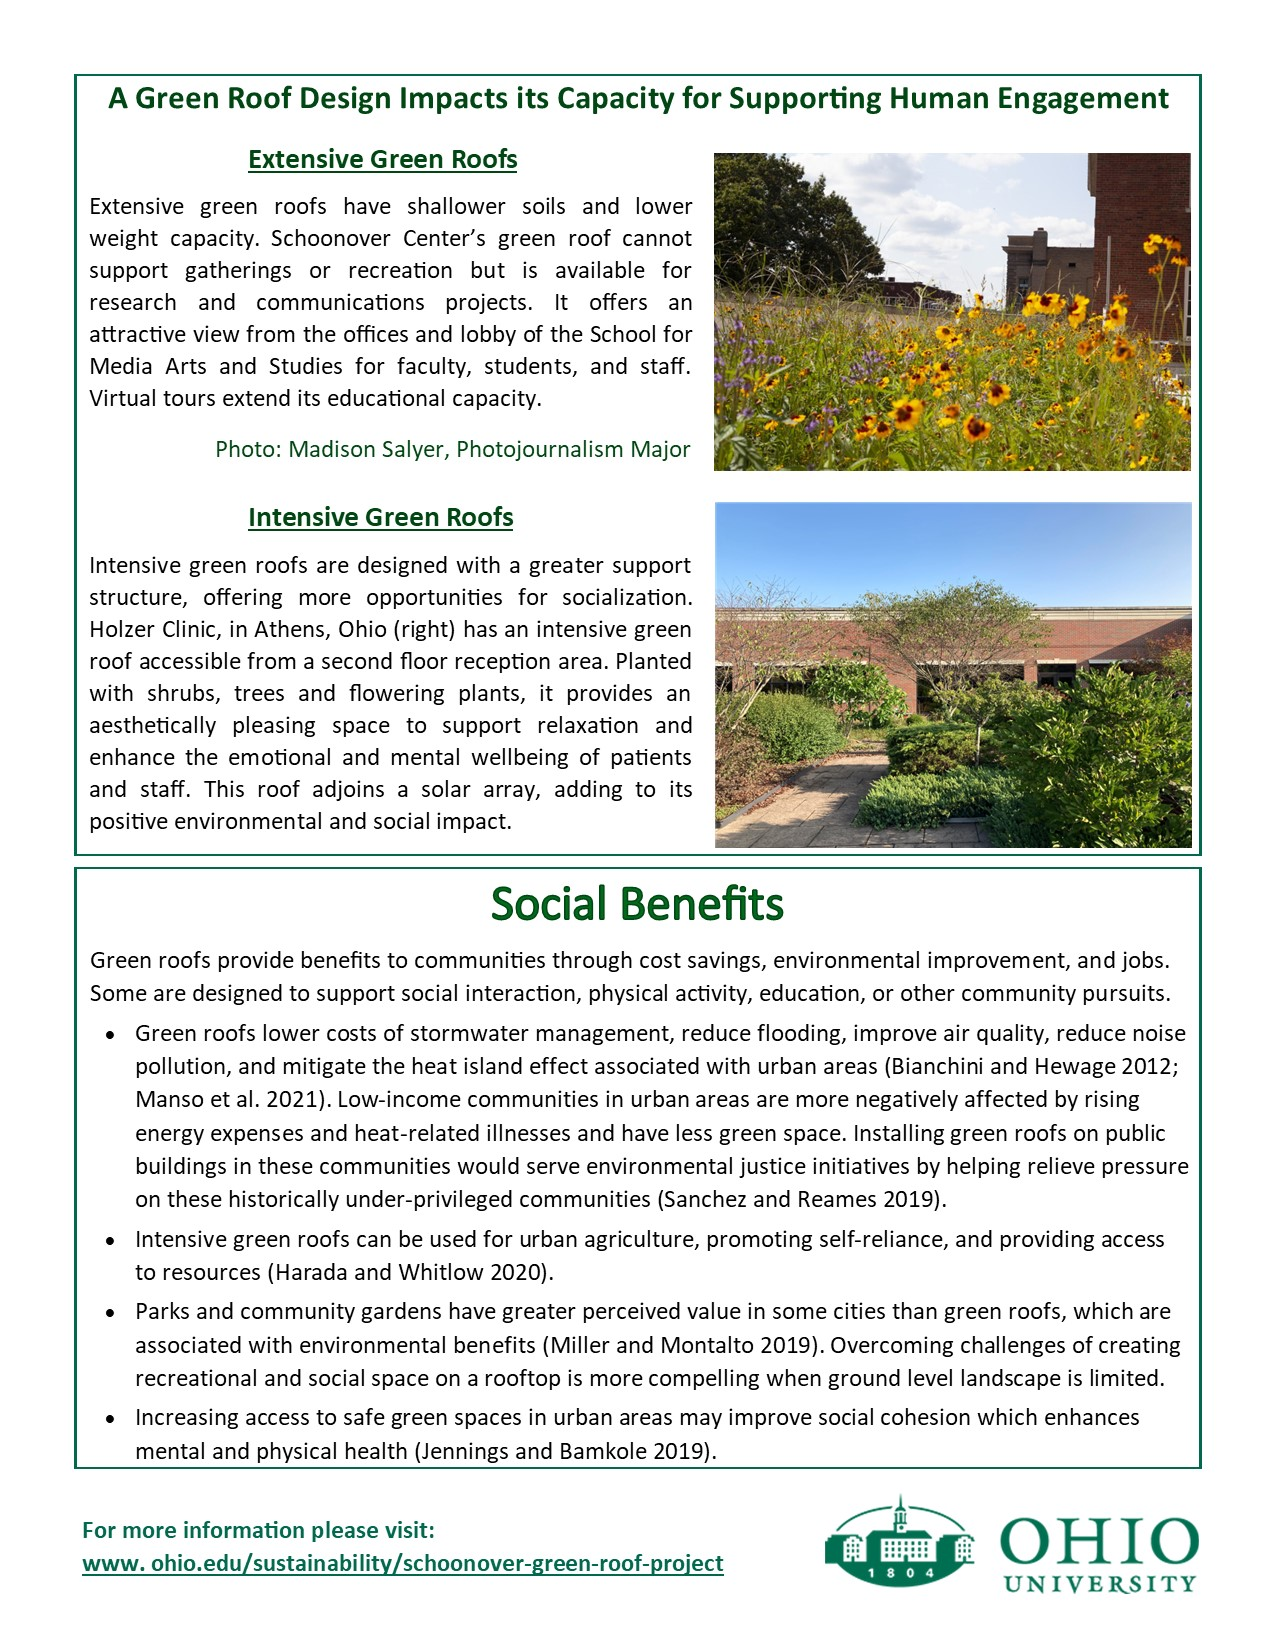 Psychosocial benefits of Green Roofs flyer p. 2